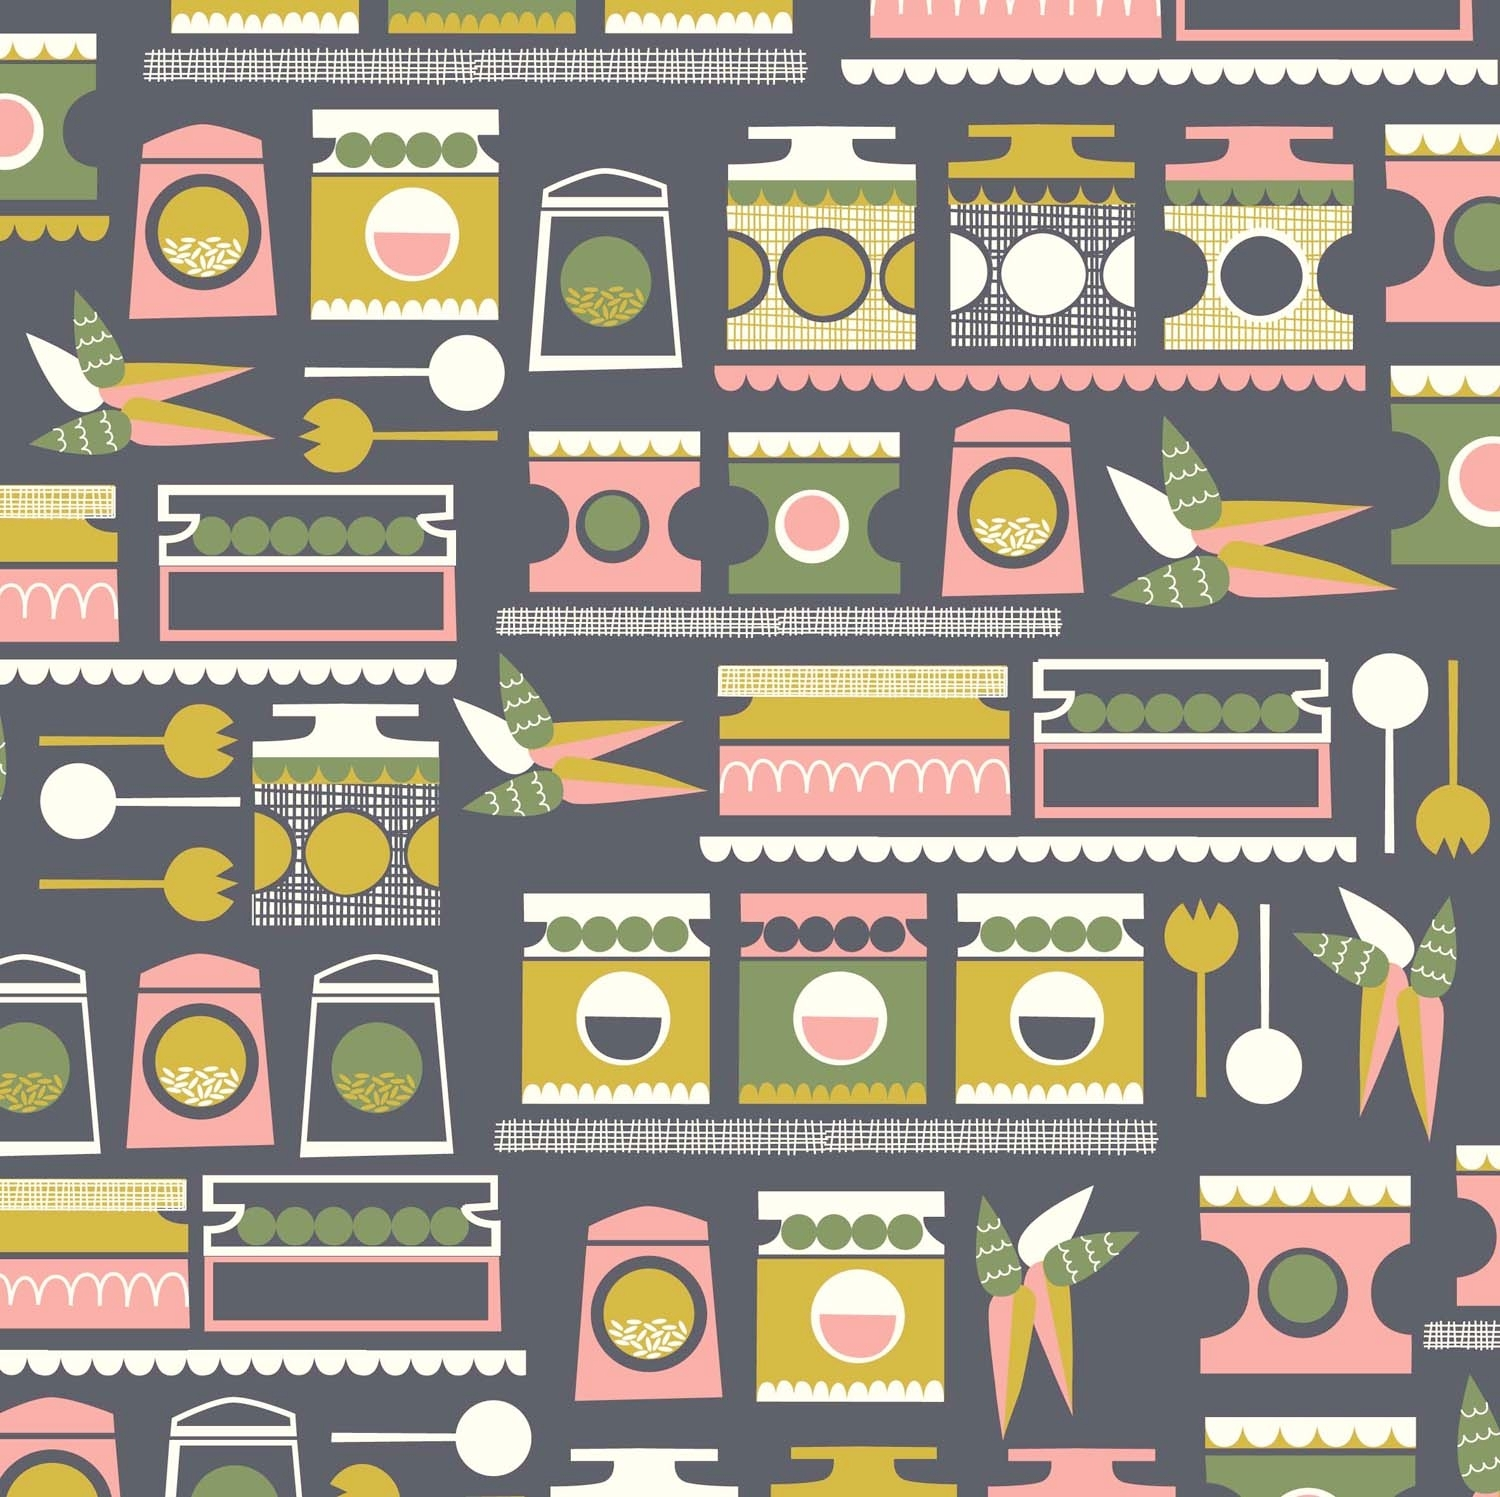 10 of the best graphic design tutorials and tips